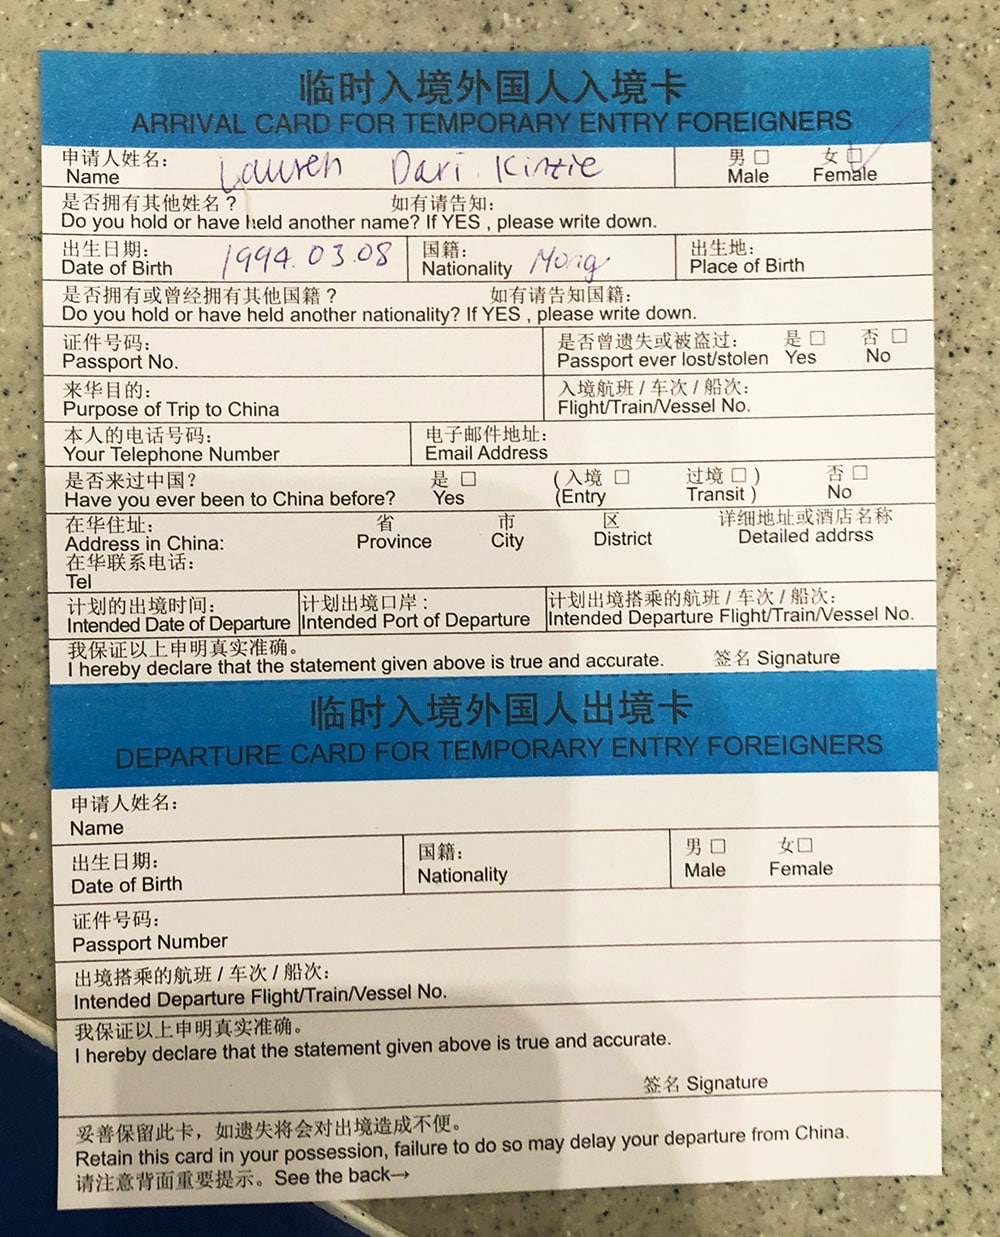 China Visa Arrival Card for Foreigners entering China